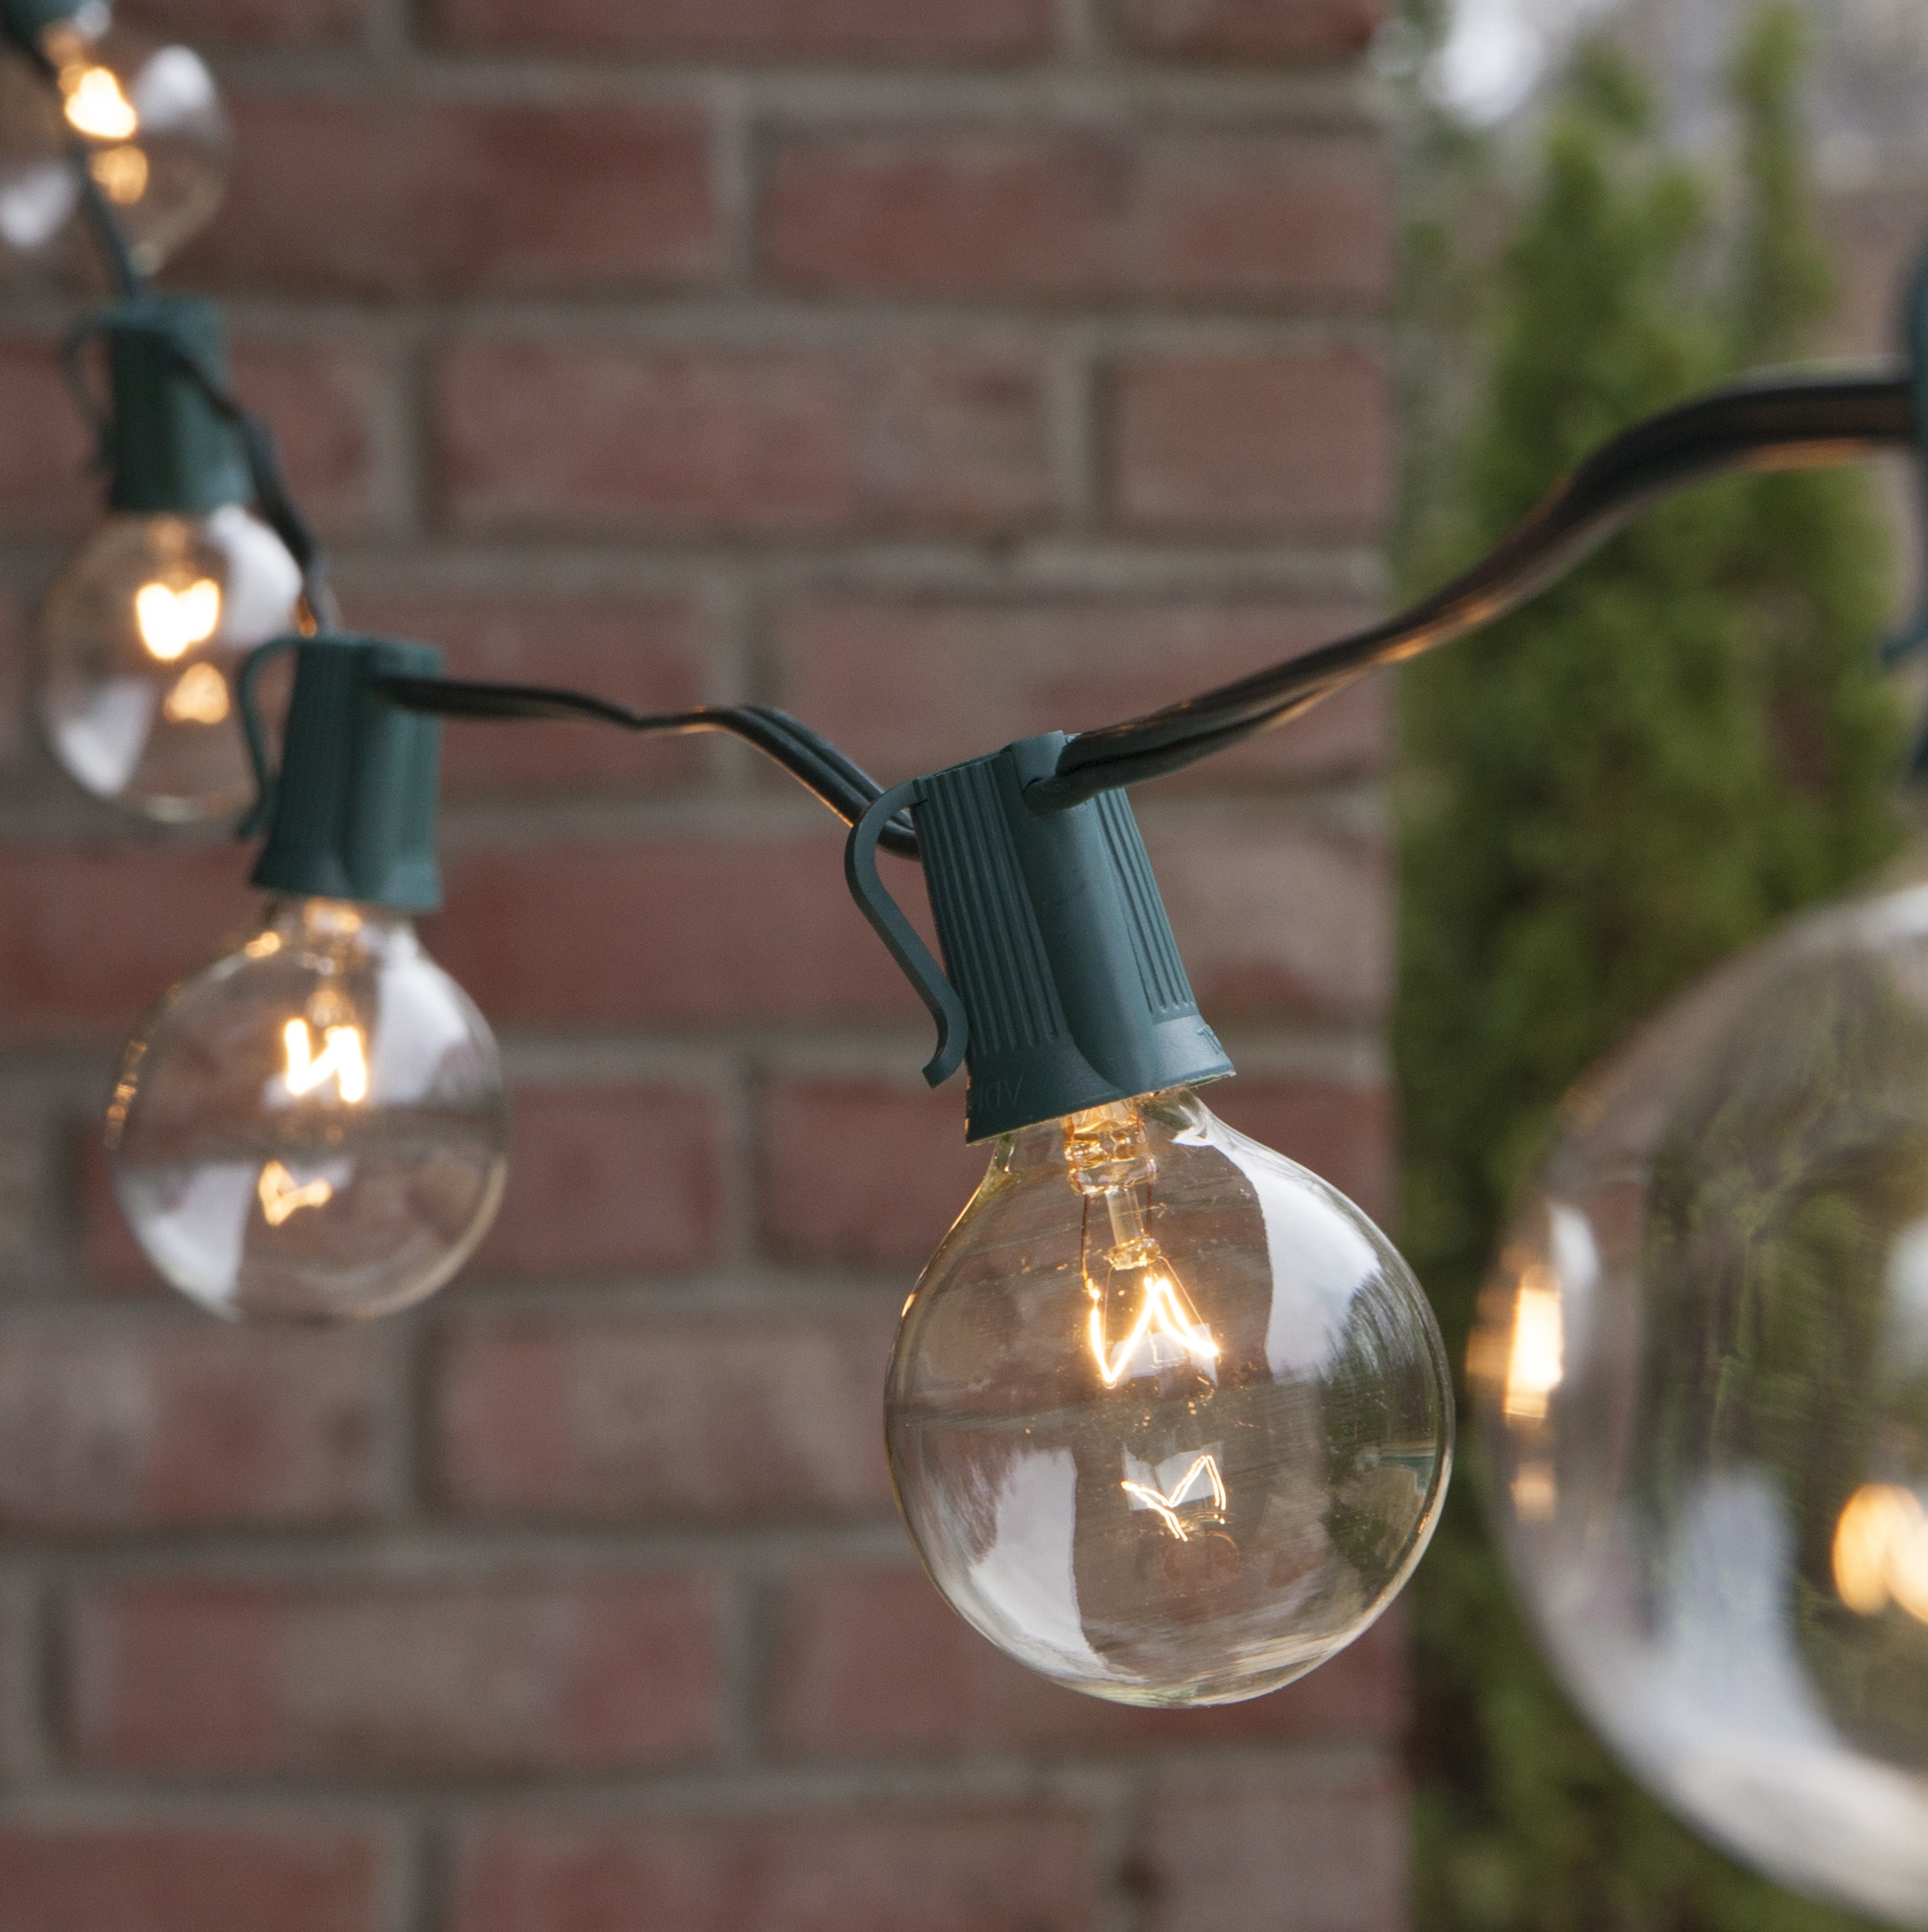 Patio lights commercial clear globe string lights 33 g50 e17 patio lights commercial clear globe string lights 33 g50 e17 bulbs green wire aloadofball